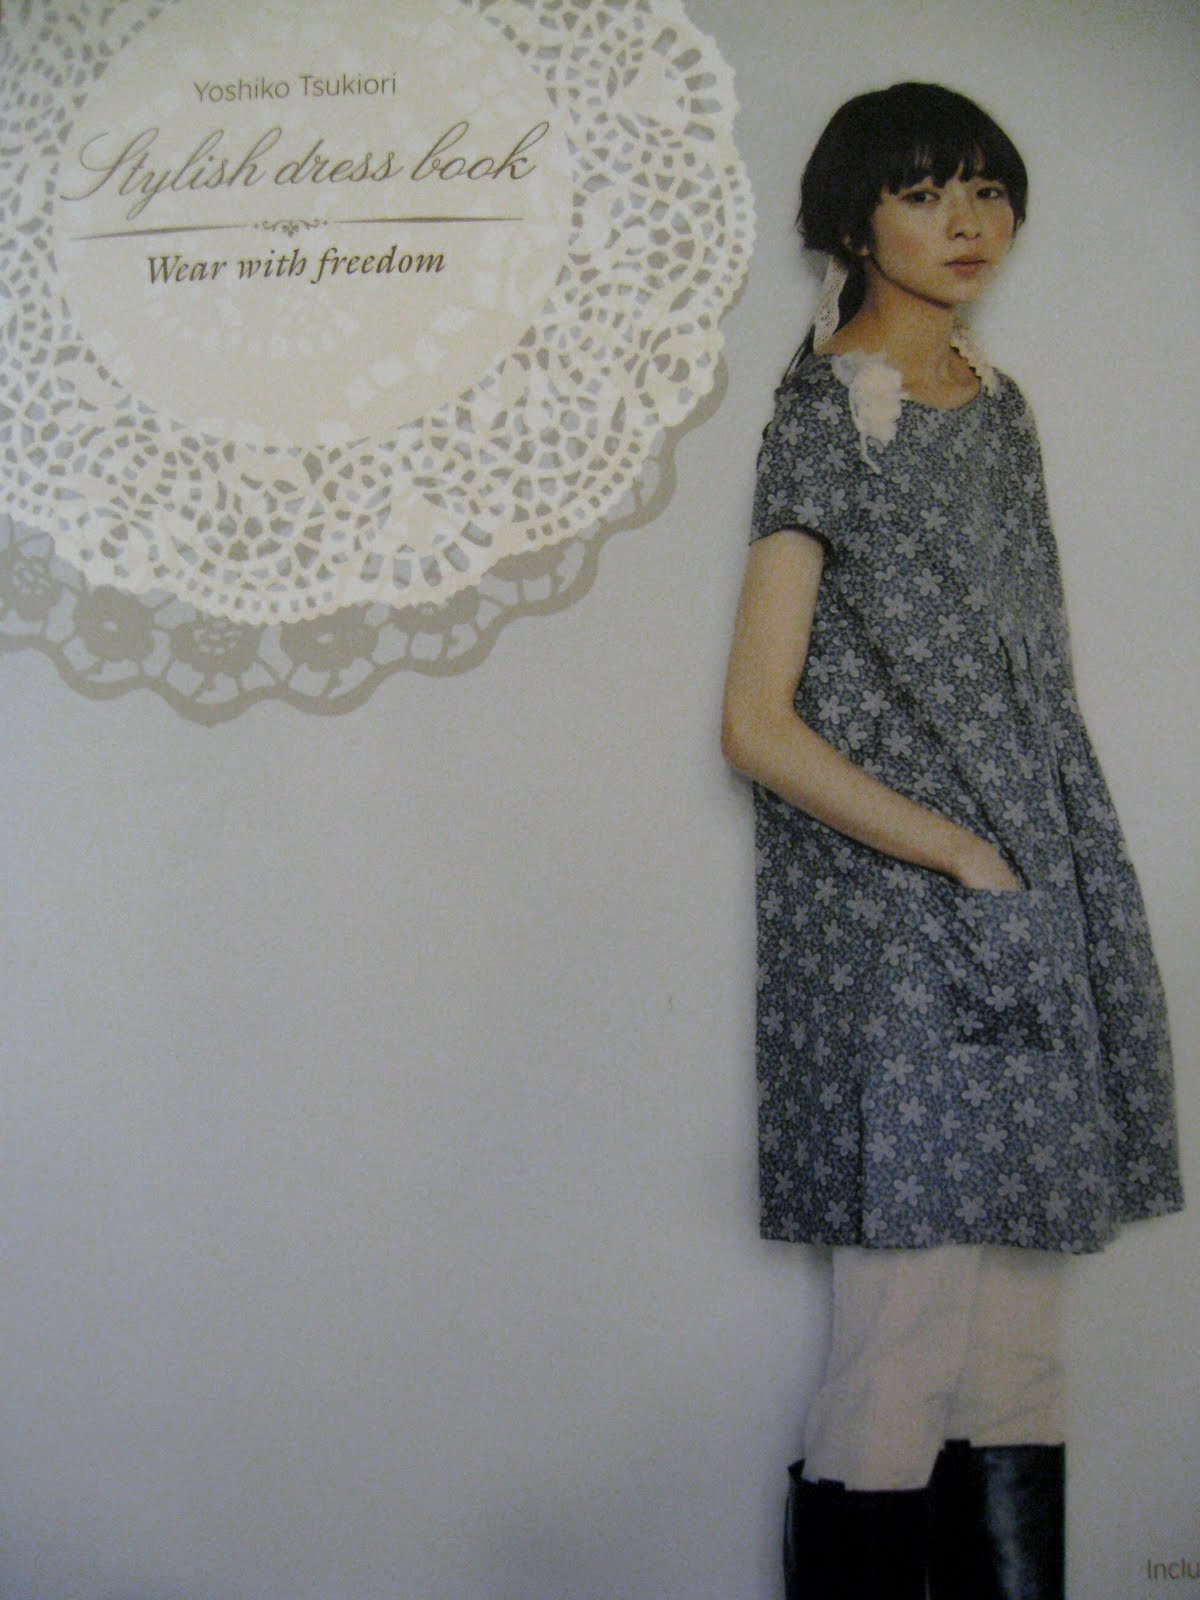 Stylish dress book 1 now available in english sew tessuti blog stylish dress book 1 now available in english jeuxipadfo Image collections